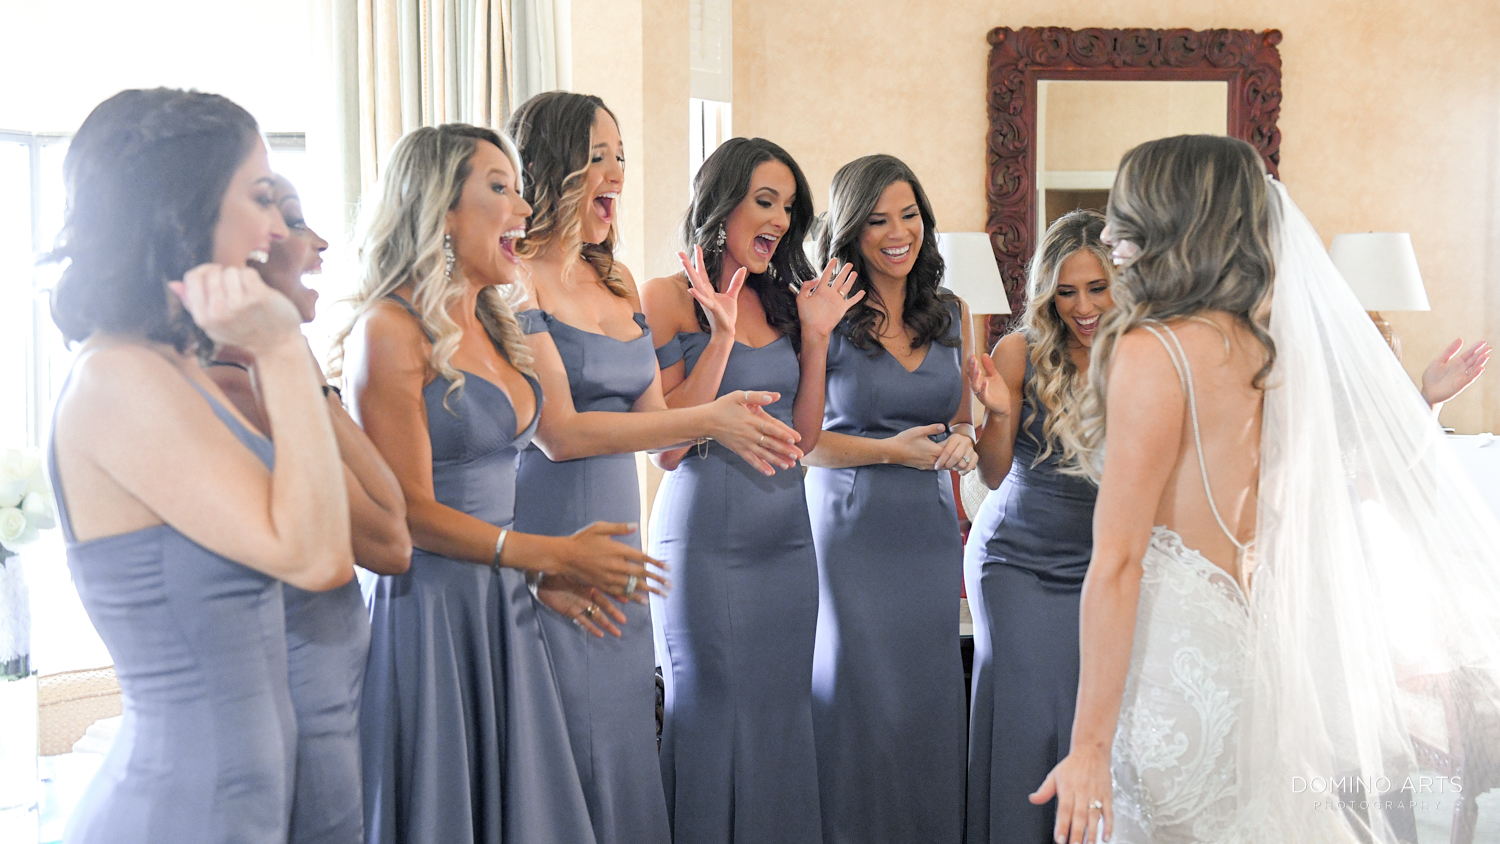 First look of bride and bridesmaids at Boca Raton Resort